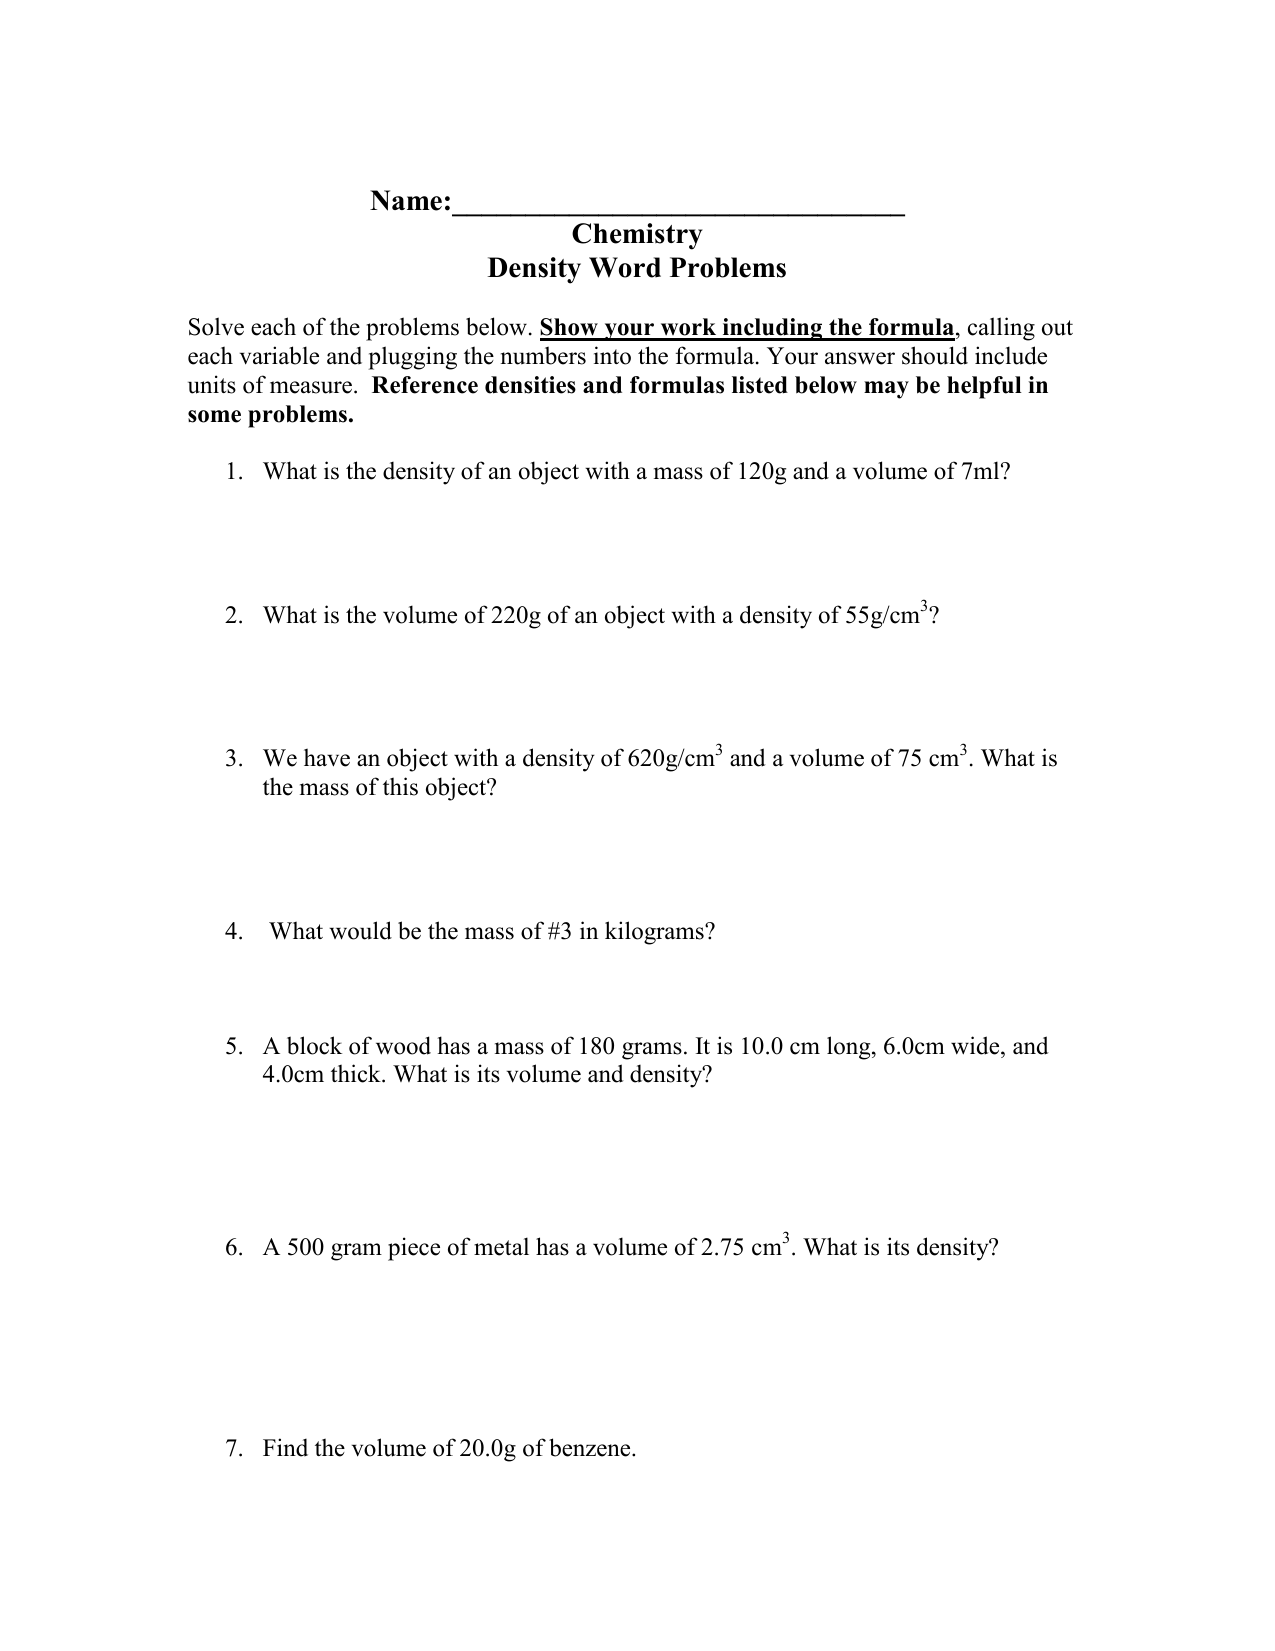 worksheet Density Word Problems Worksheet Answers 008418030 1 88e8688eef12a35a48c6b97bd0aa4371 png